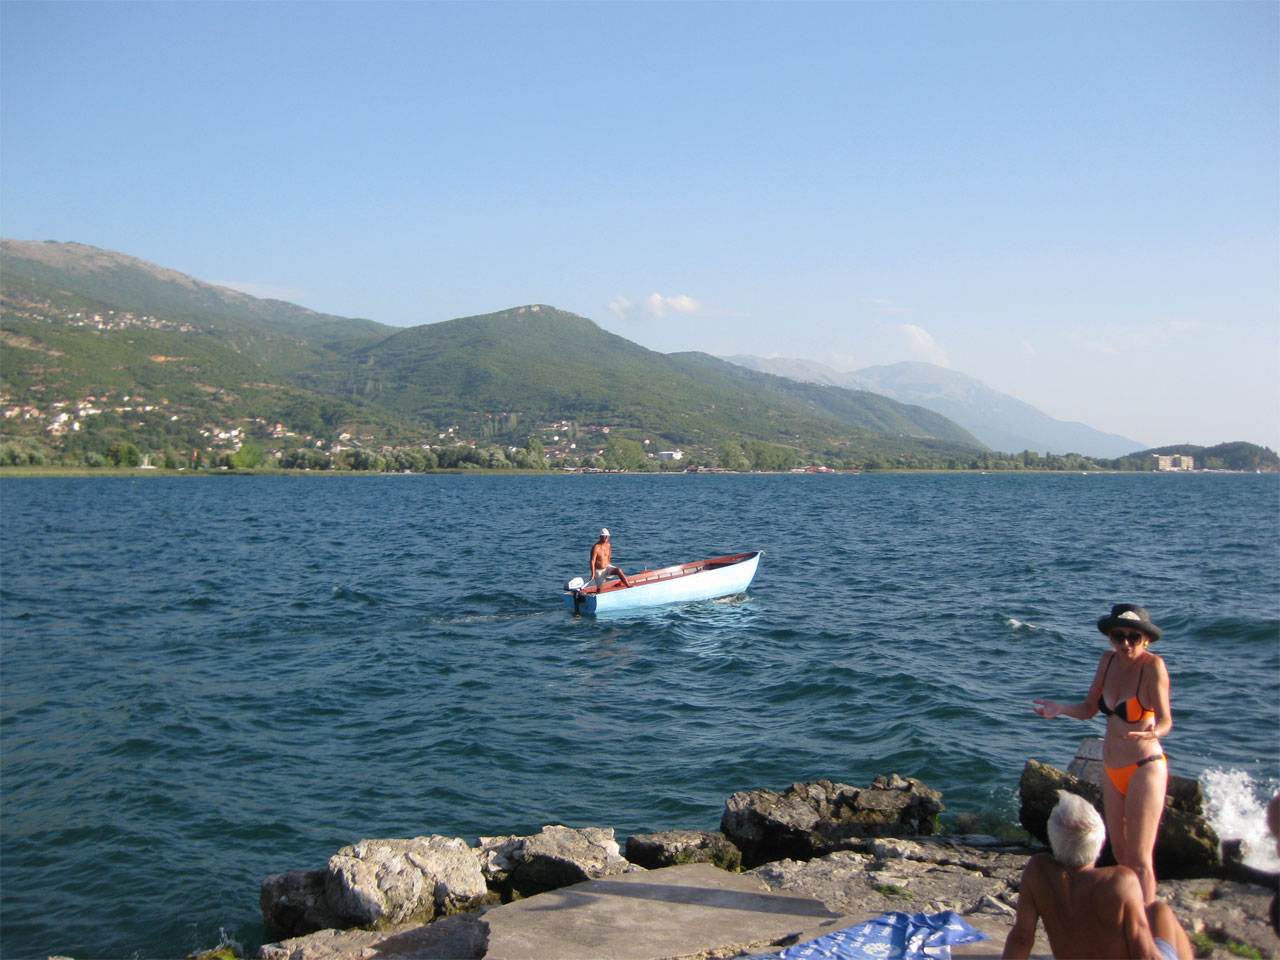 Our captain sails off into the distance, Lake Ohrid, Macedonia